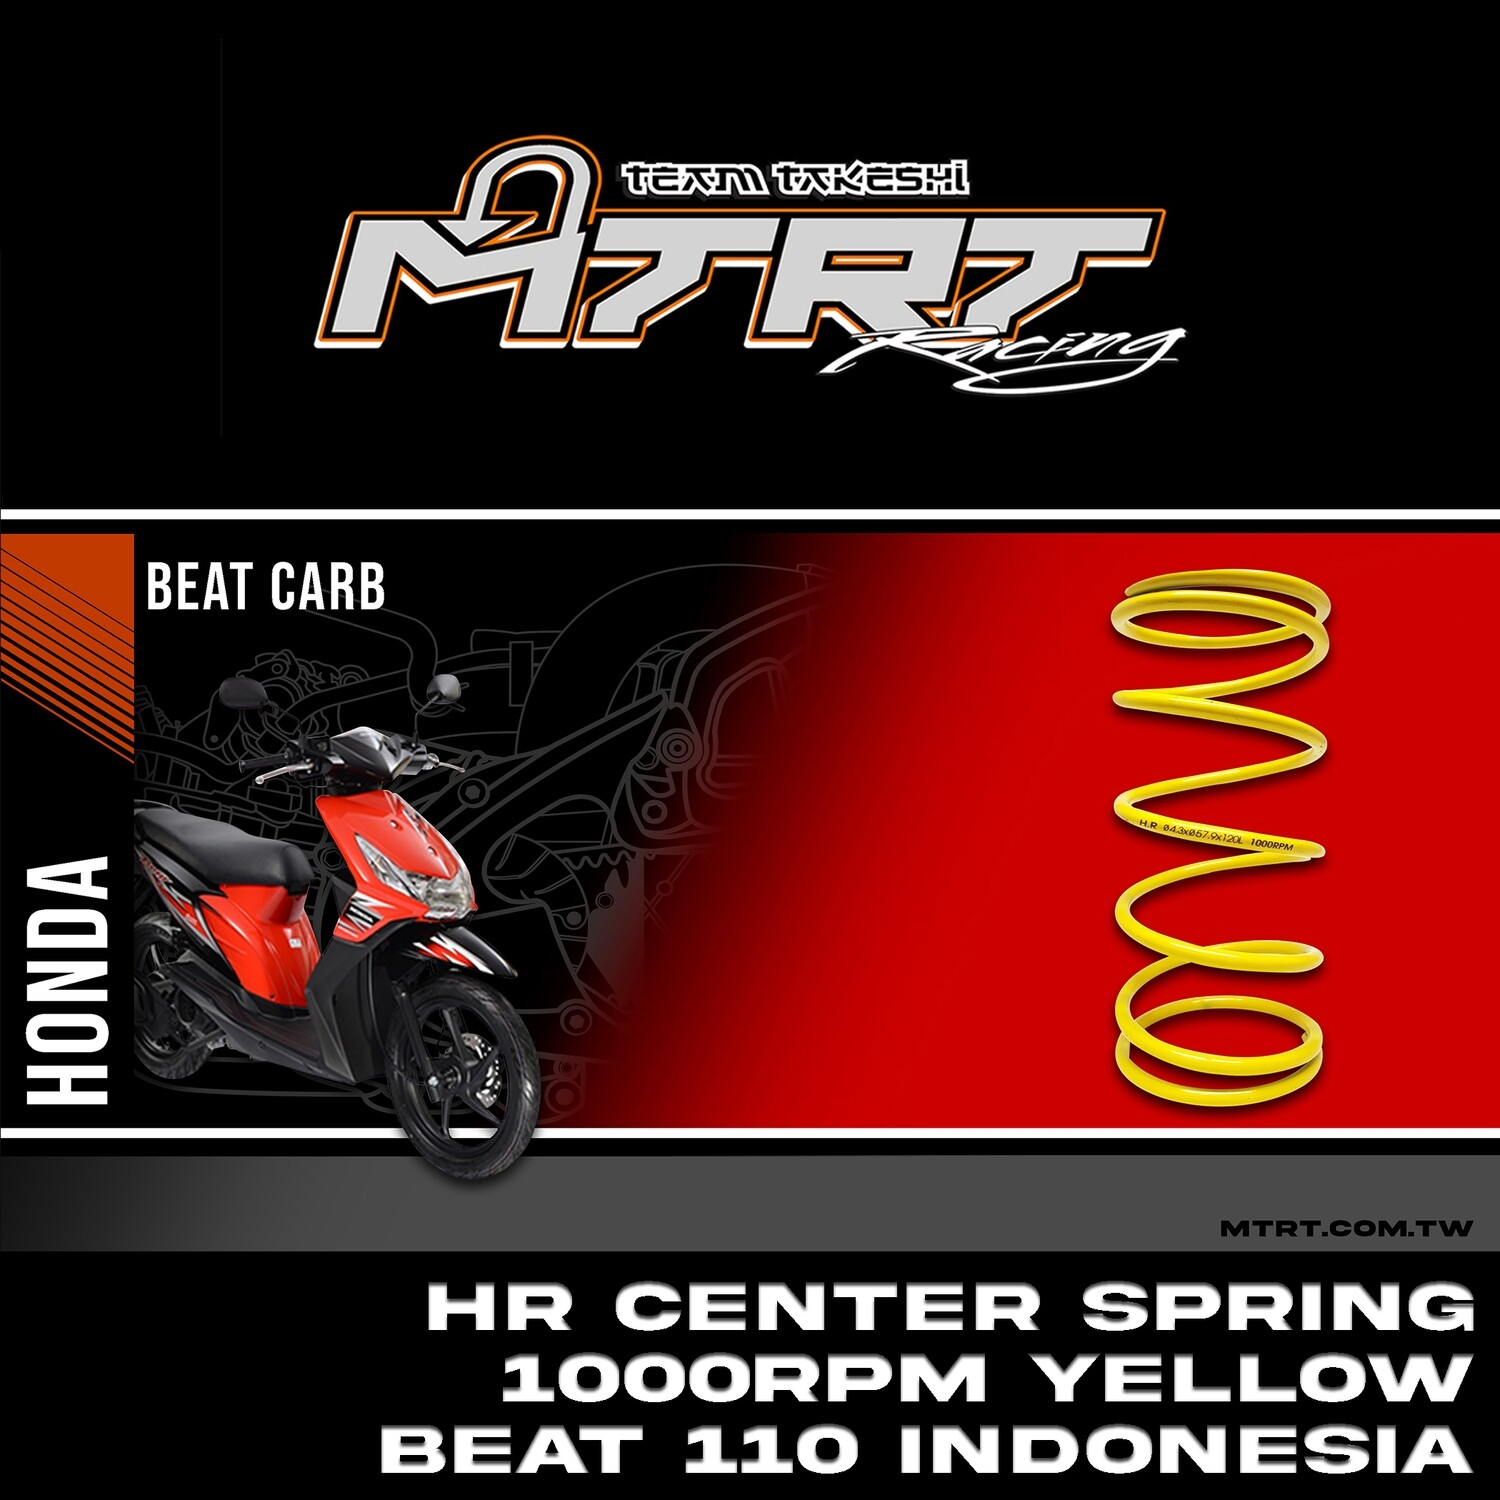 HR CENTER SPRING 1000RPM-YELLOW BEAT110 INDONESIA